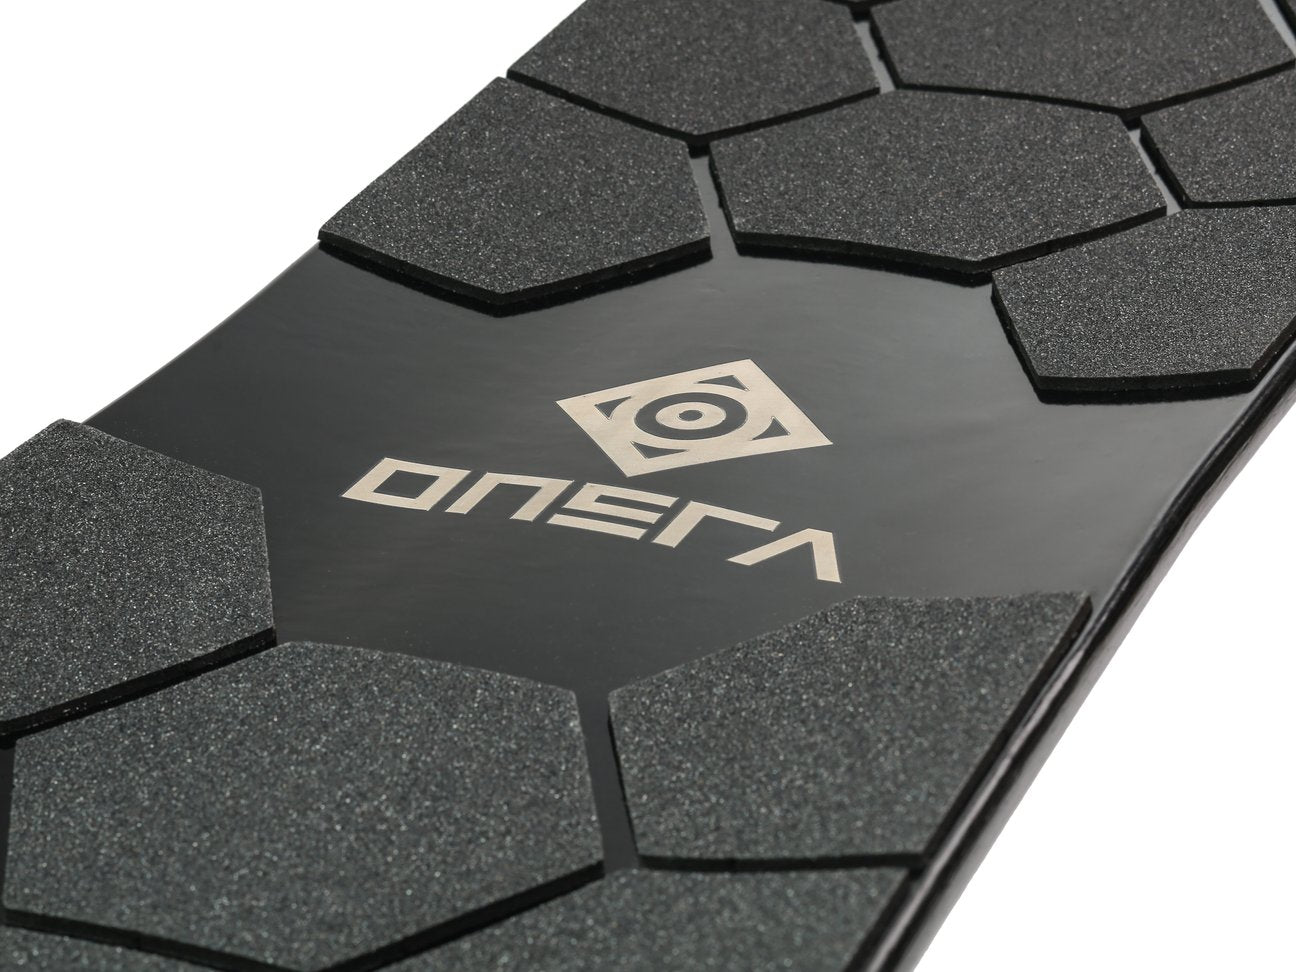 4mm Shock-Absorbing Foam Electric Skateboard Griptape - ONSRA California